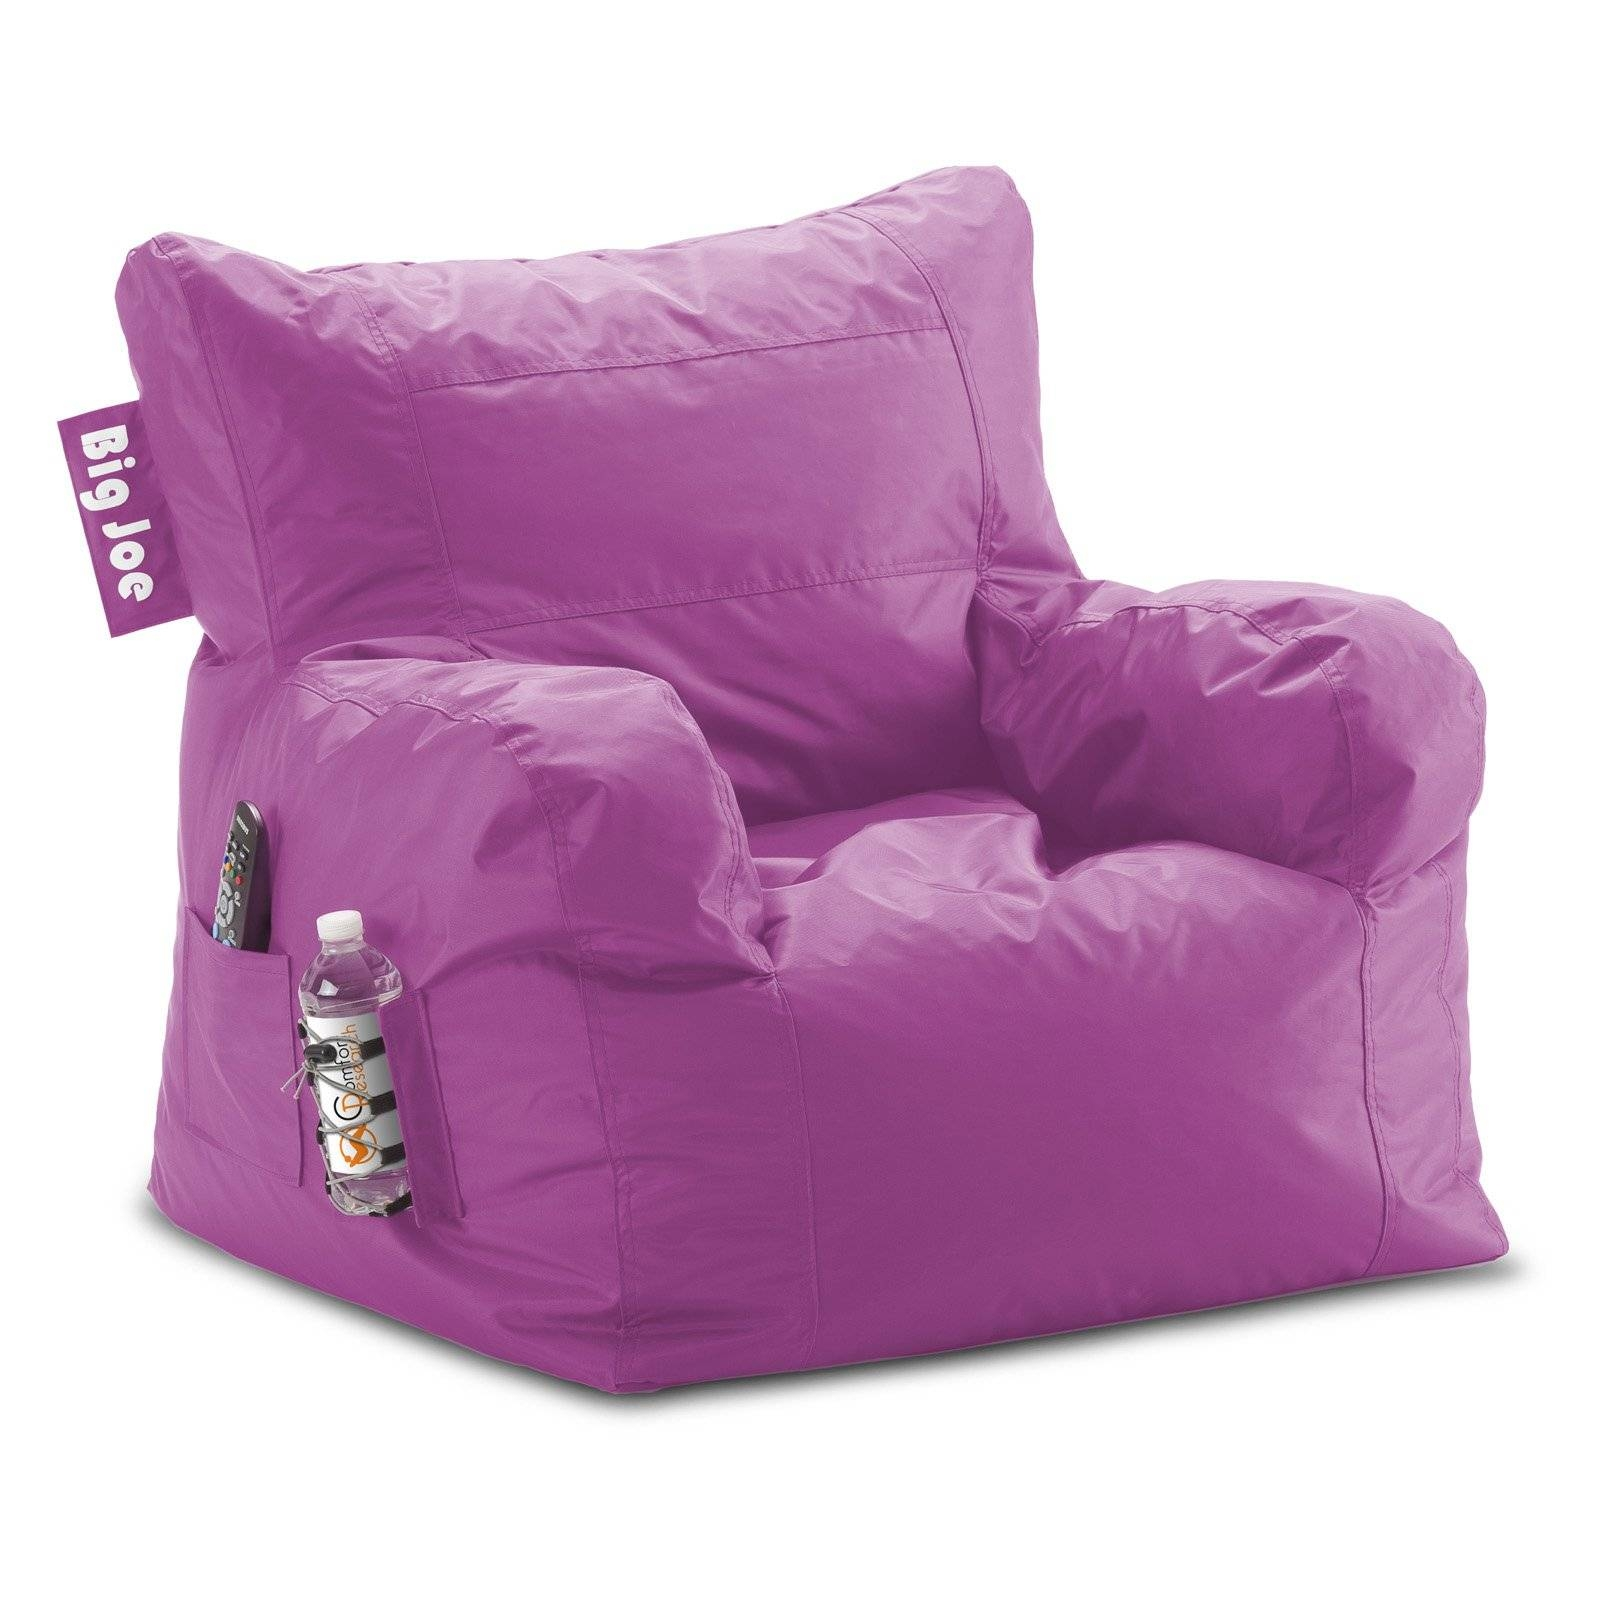 Big Joe Dorm Bean Bag Chair | Hayneedle pertaining to Bean Bag Sofa Chairs (Image 5 of 15)